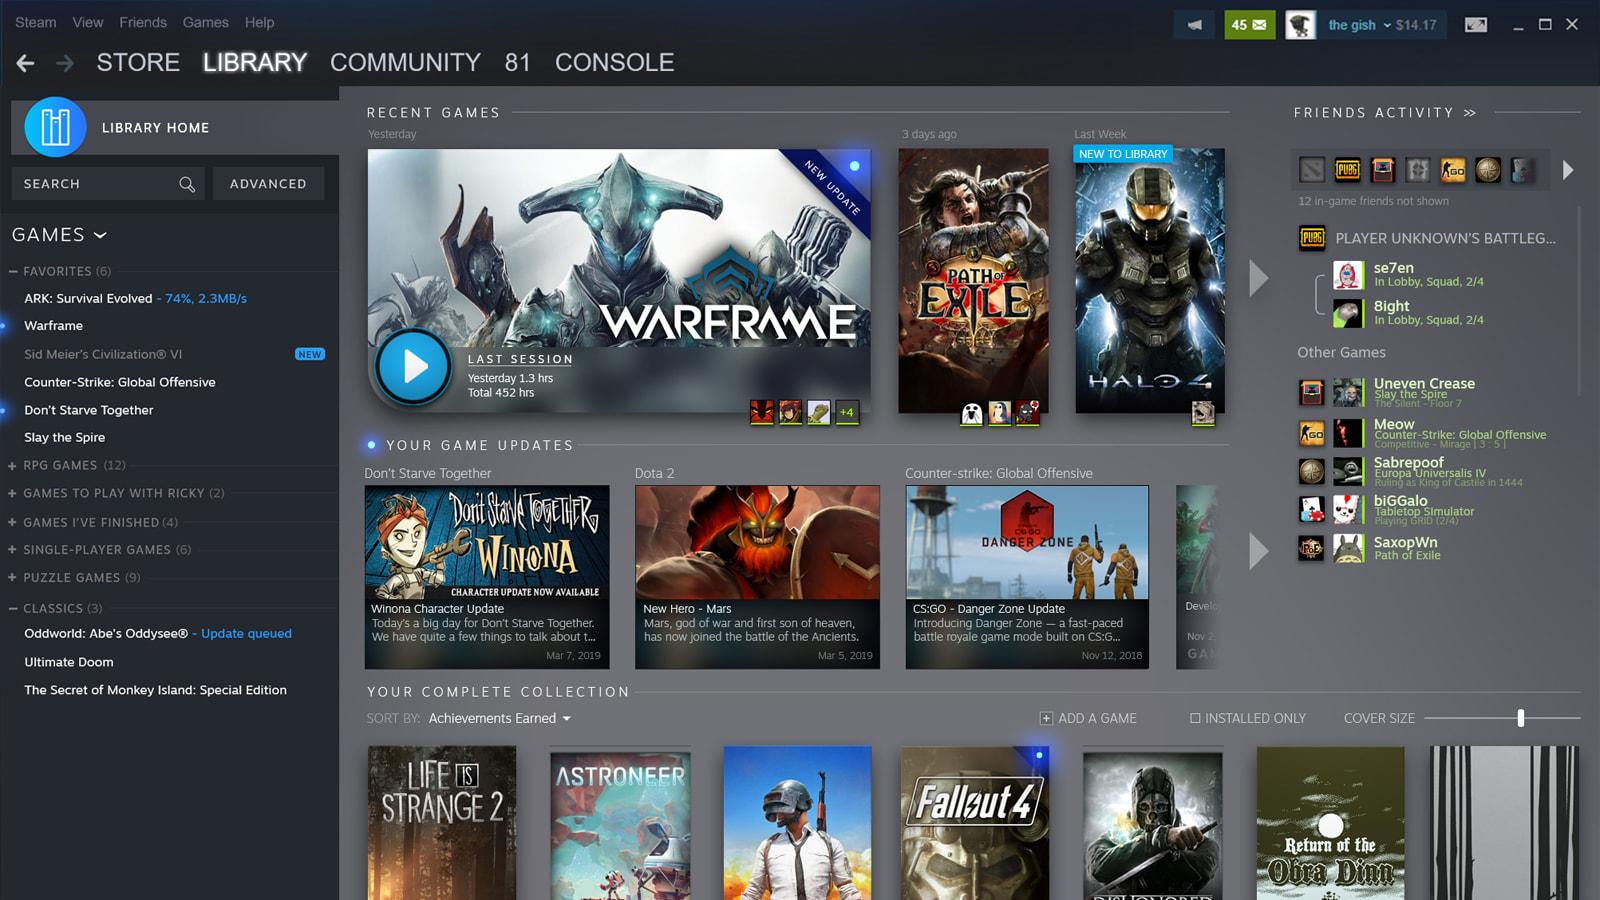 Steam's redesigned library will show what's happening with your games    Engadget